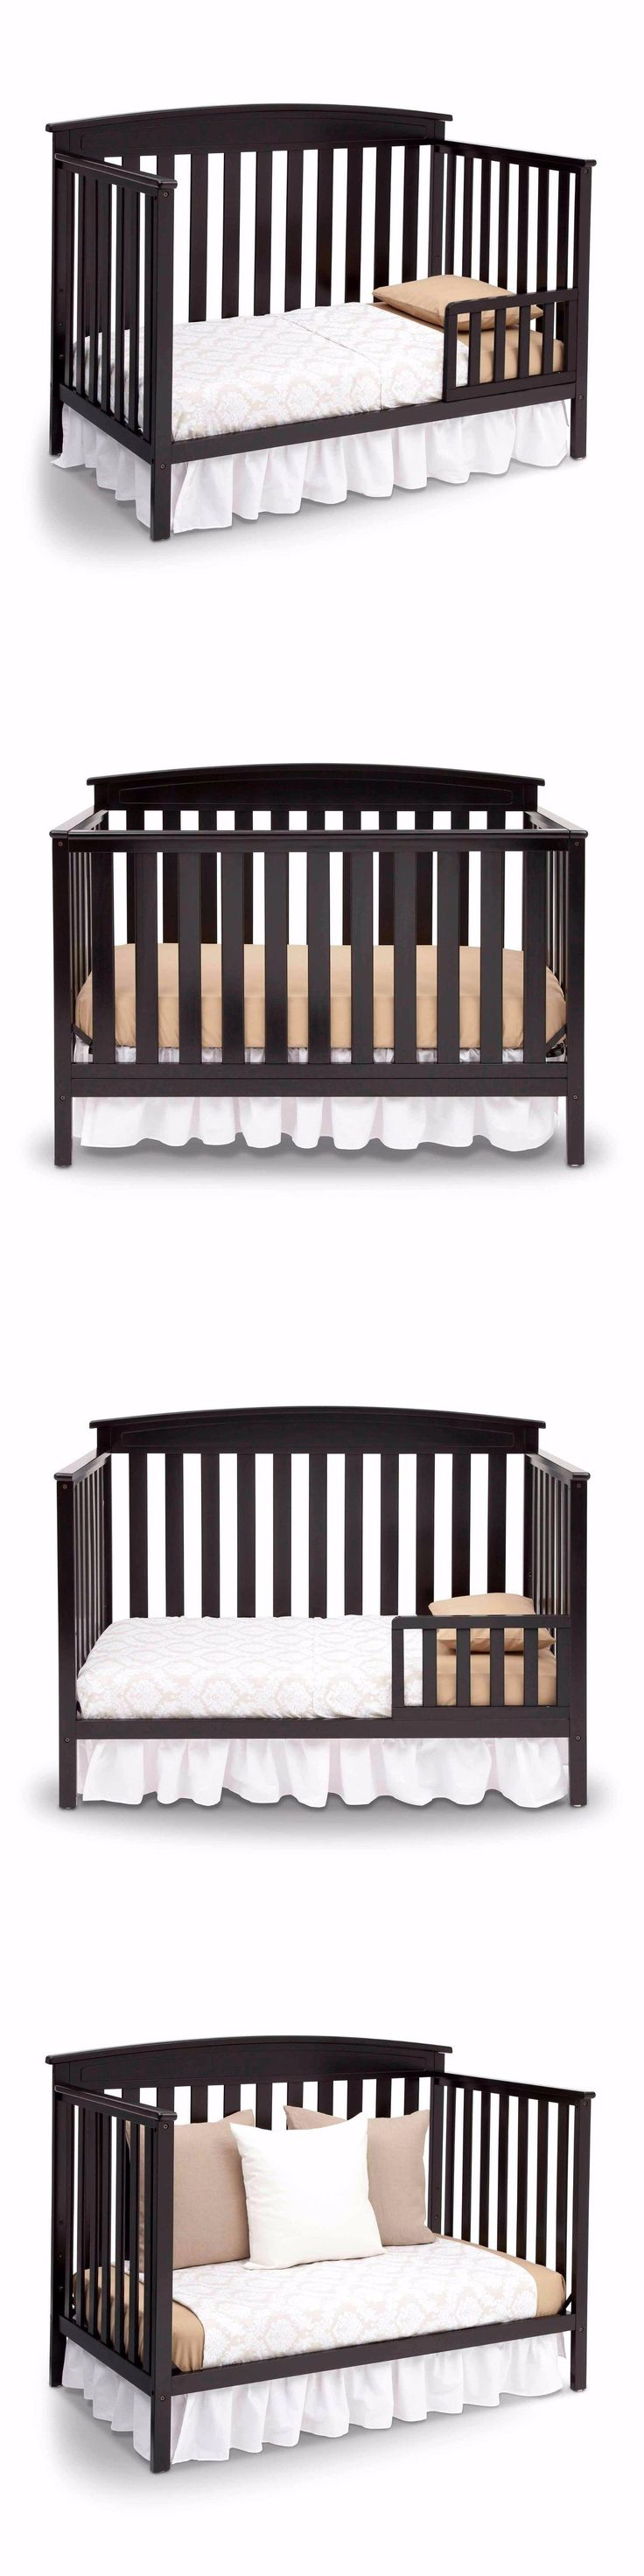 Baby Nursery: New 4 In 1 Convertible Baby Crib Mattress Toddler Nursery Bed  Changer Side